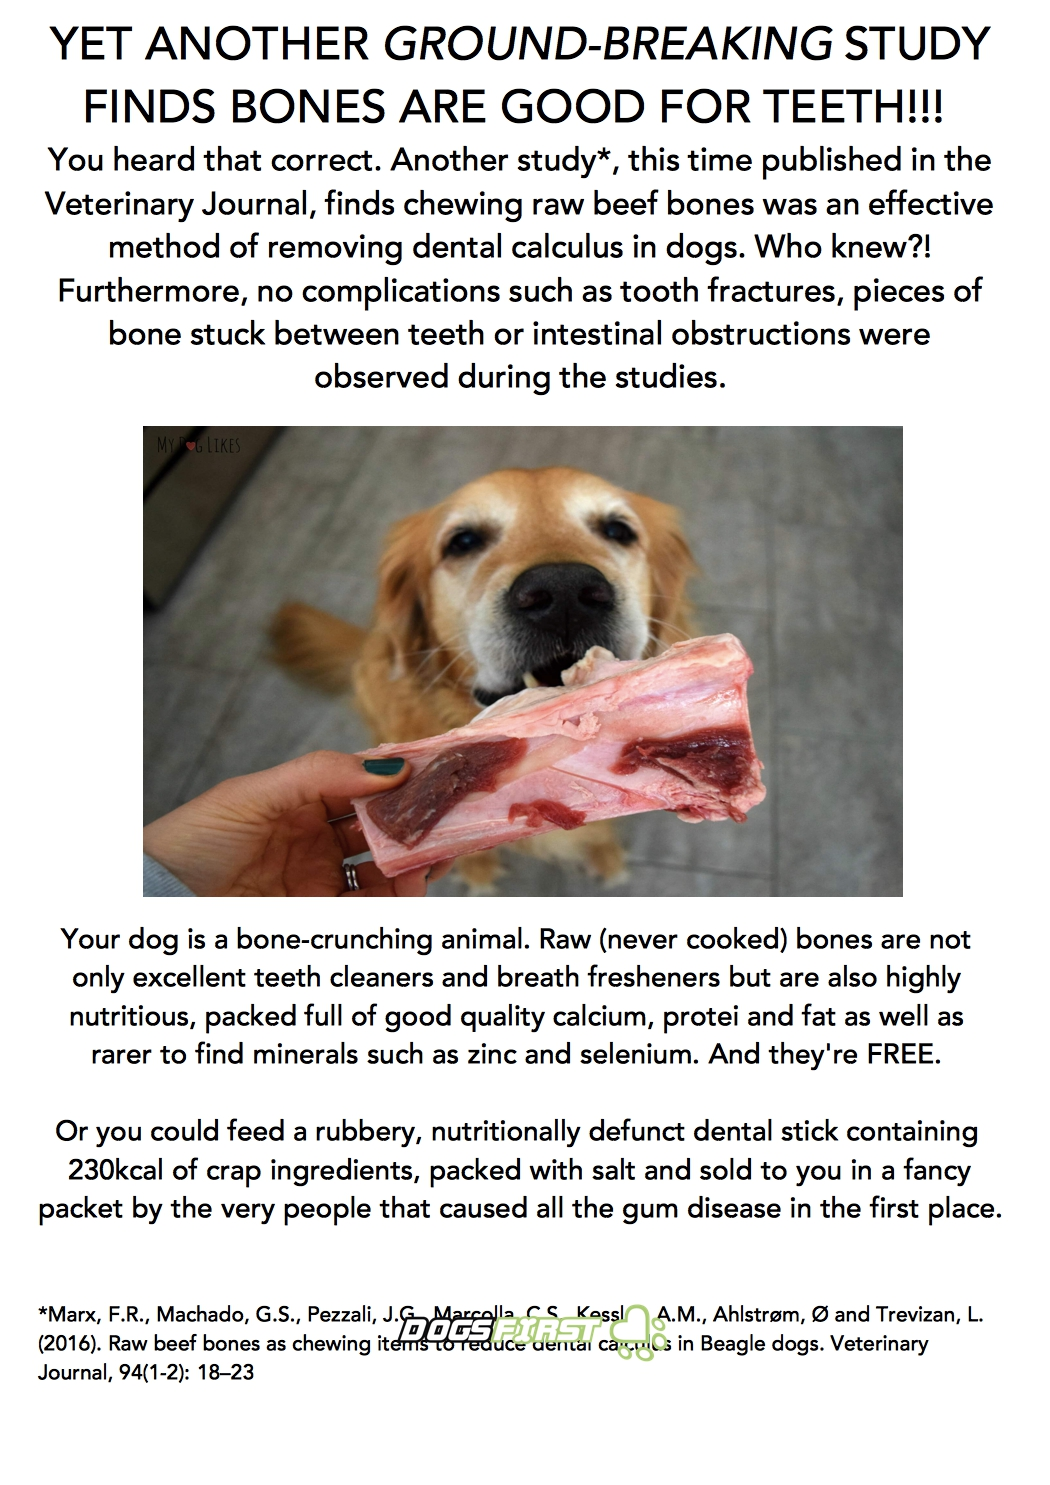 WSAVA Raw Feeding Statement, Dissected Dogs First